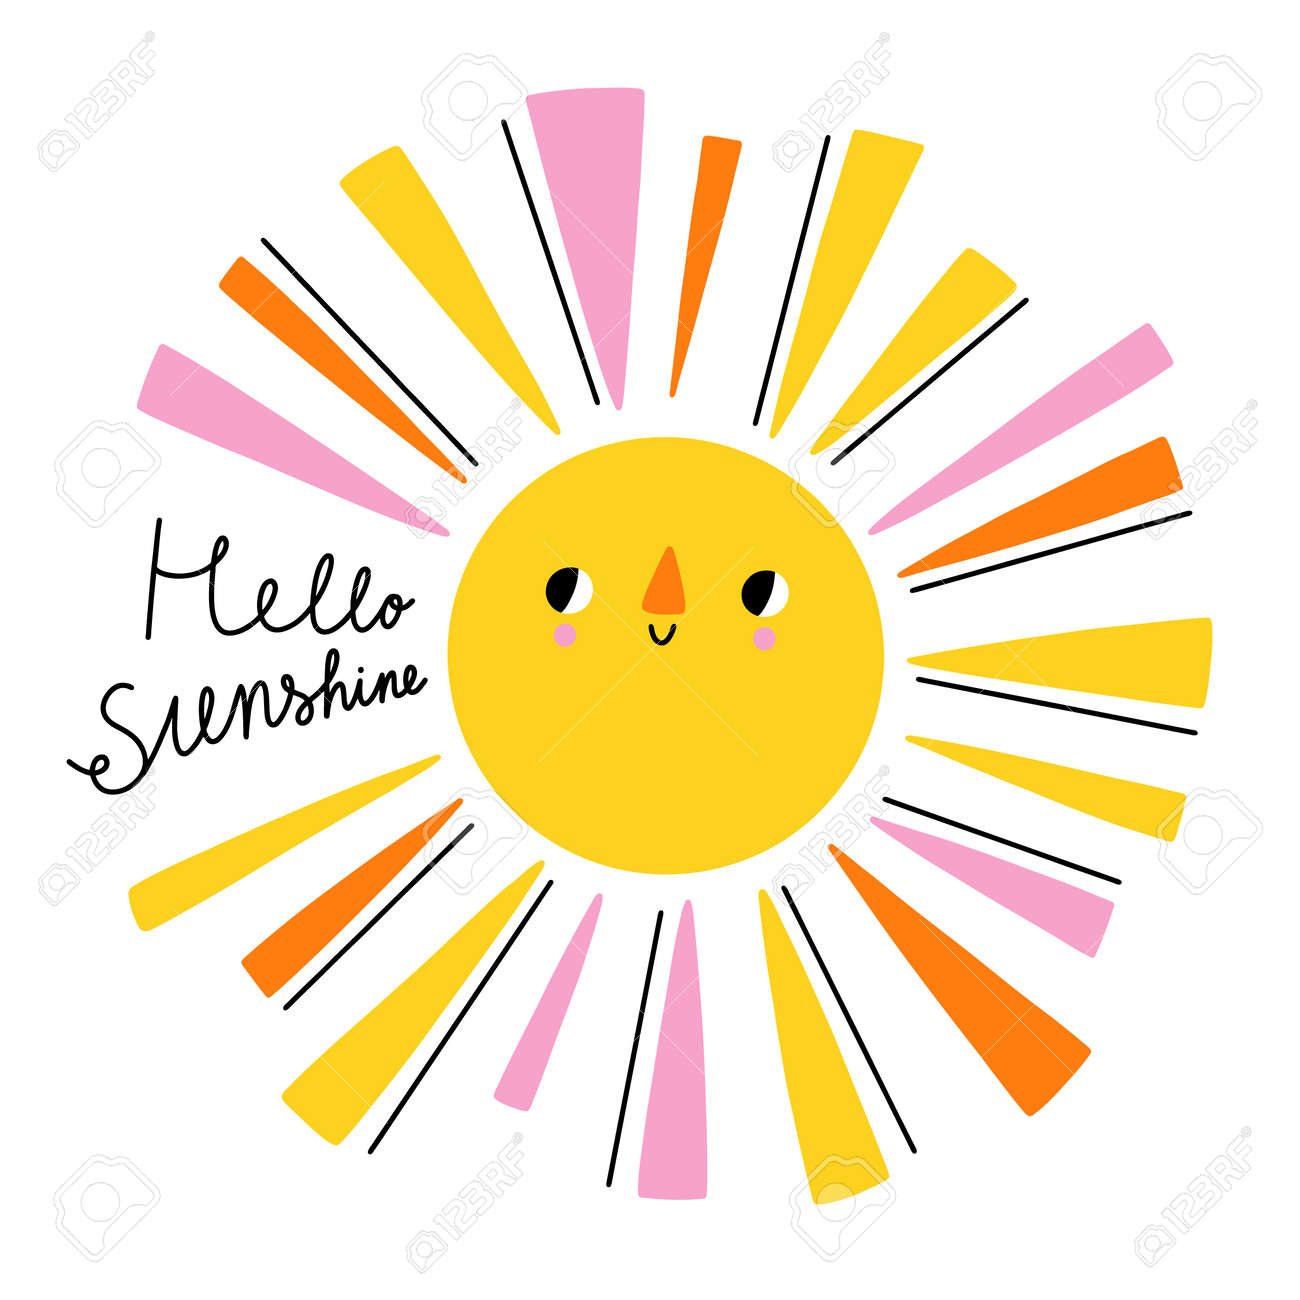 Hello sunshine hand drawn lettering, cartoon sun character with colorful sunbeams, vector illustration isolated on white - 163805588